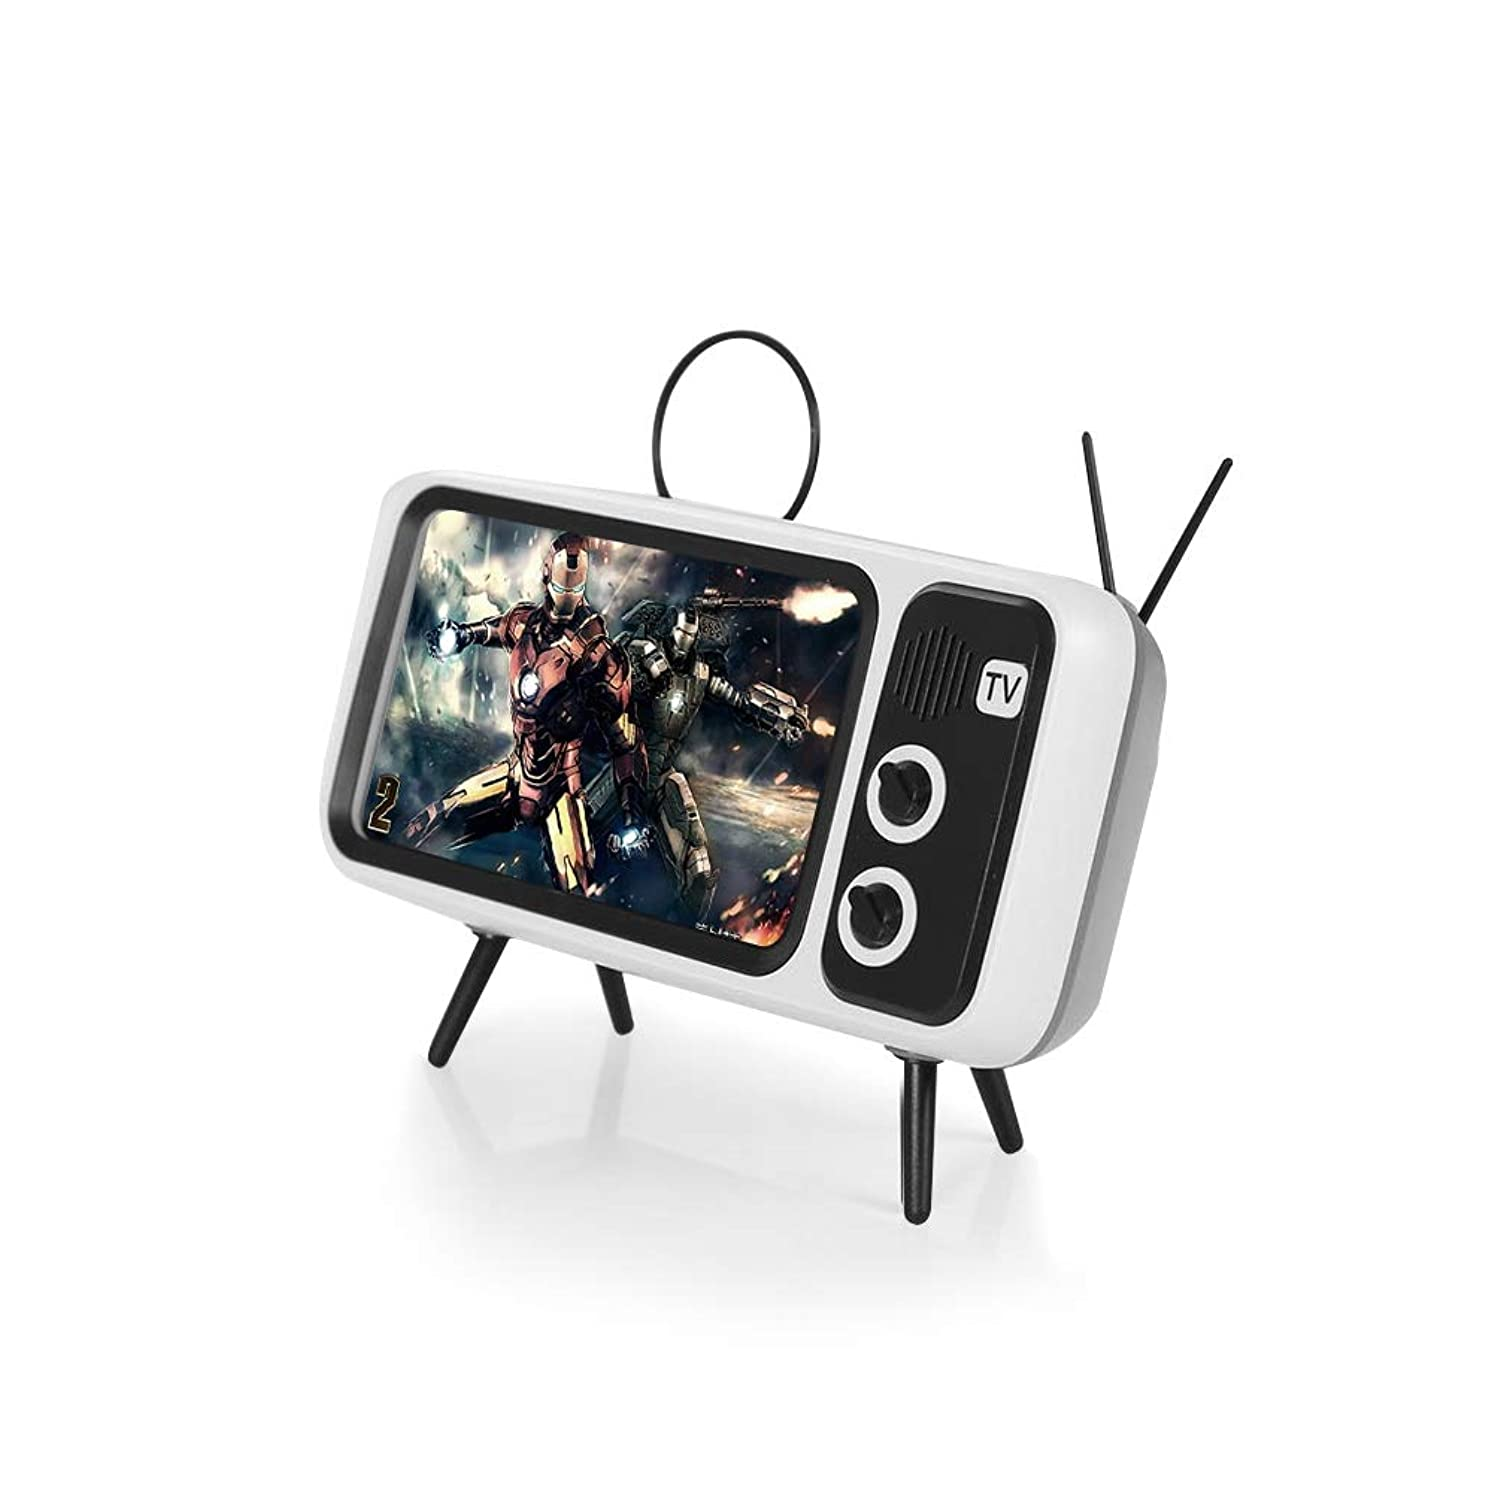 Retro TV Bluetooth 5.0 Speaker,Portable Bluetooth Radio Speaker with Phone Stand Holder,3D Stereo Sound Quality,USB Port Compatible iPhone/Android - Retro Television Shape (White)